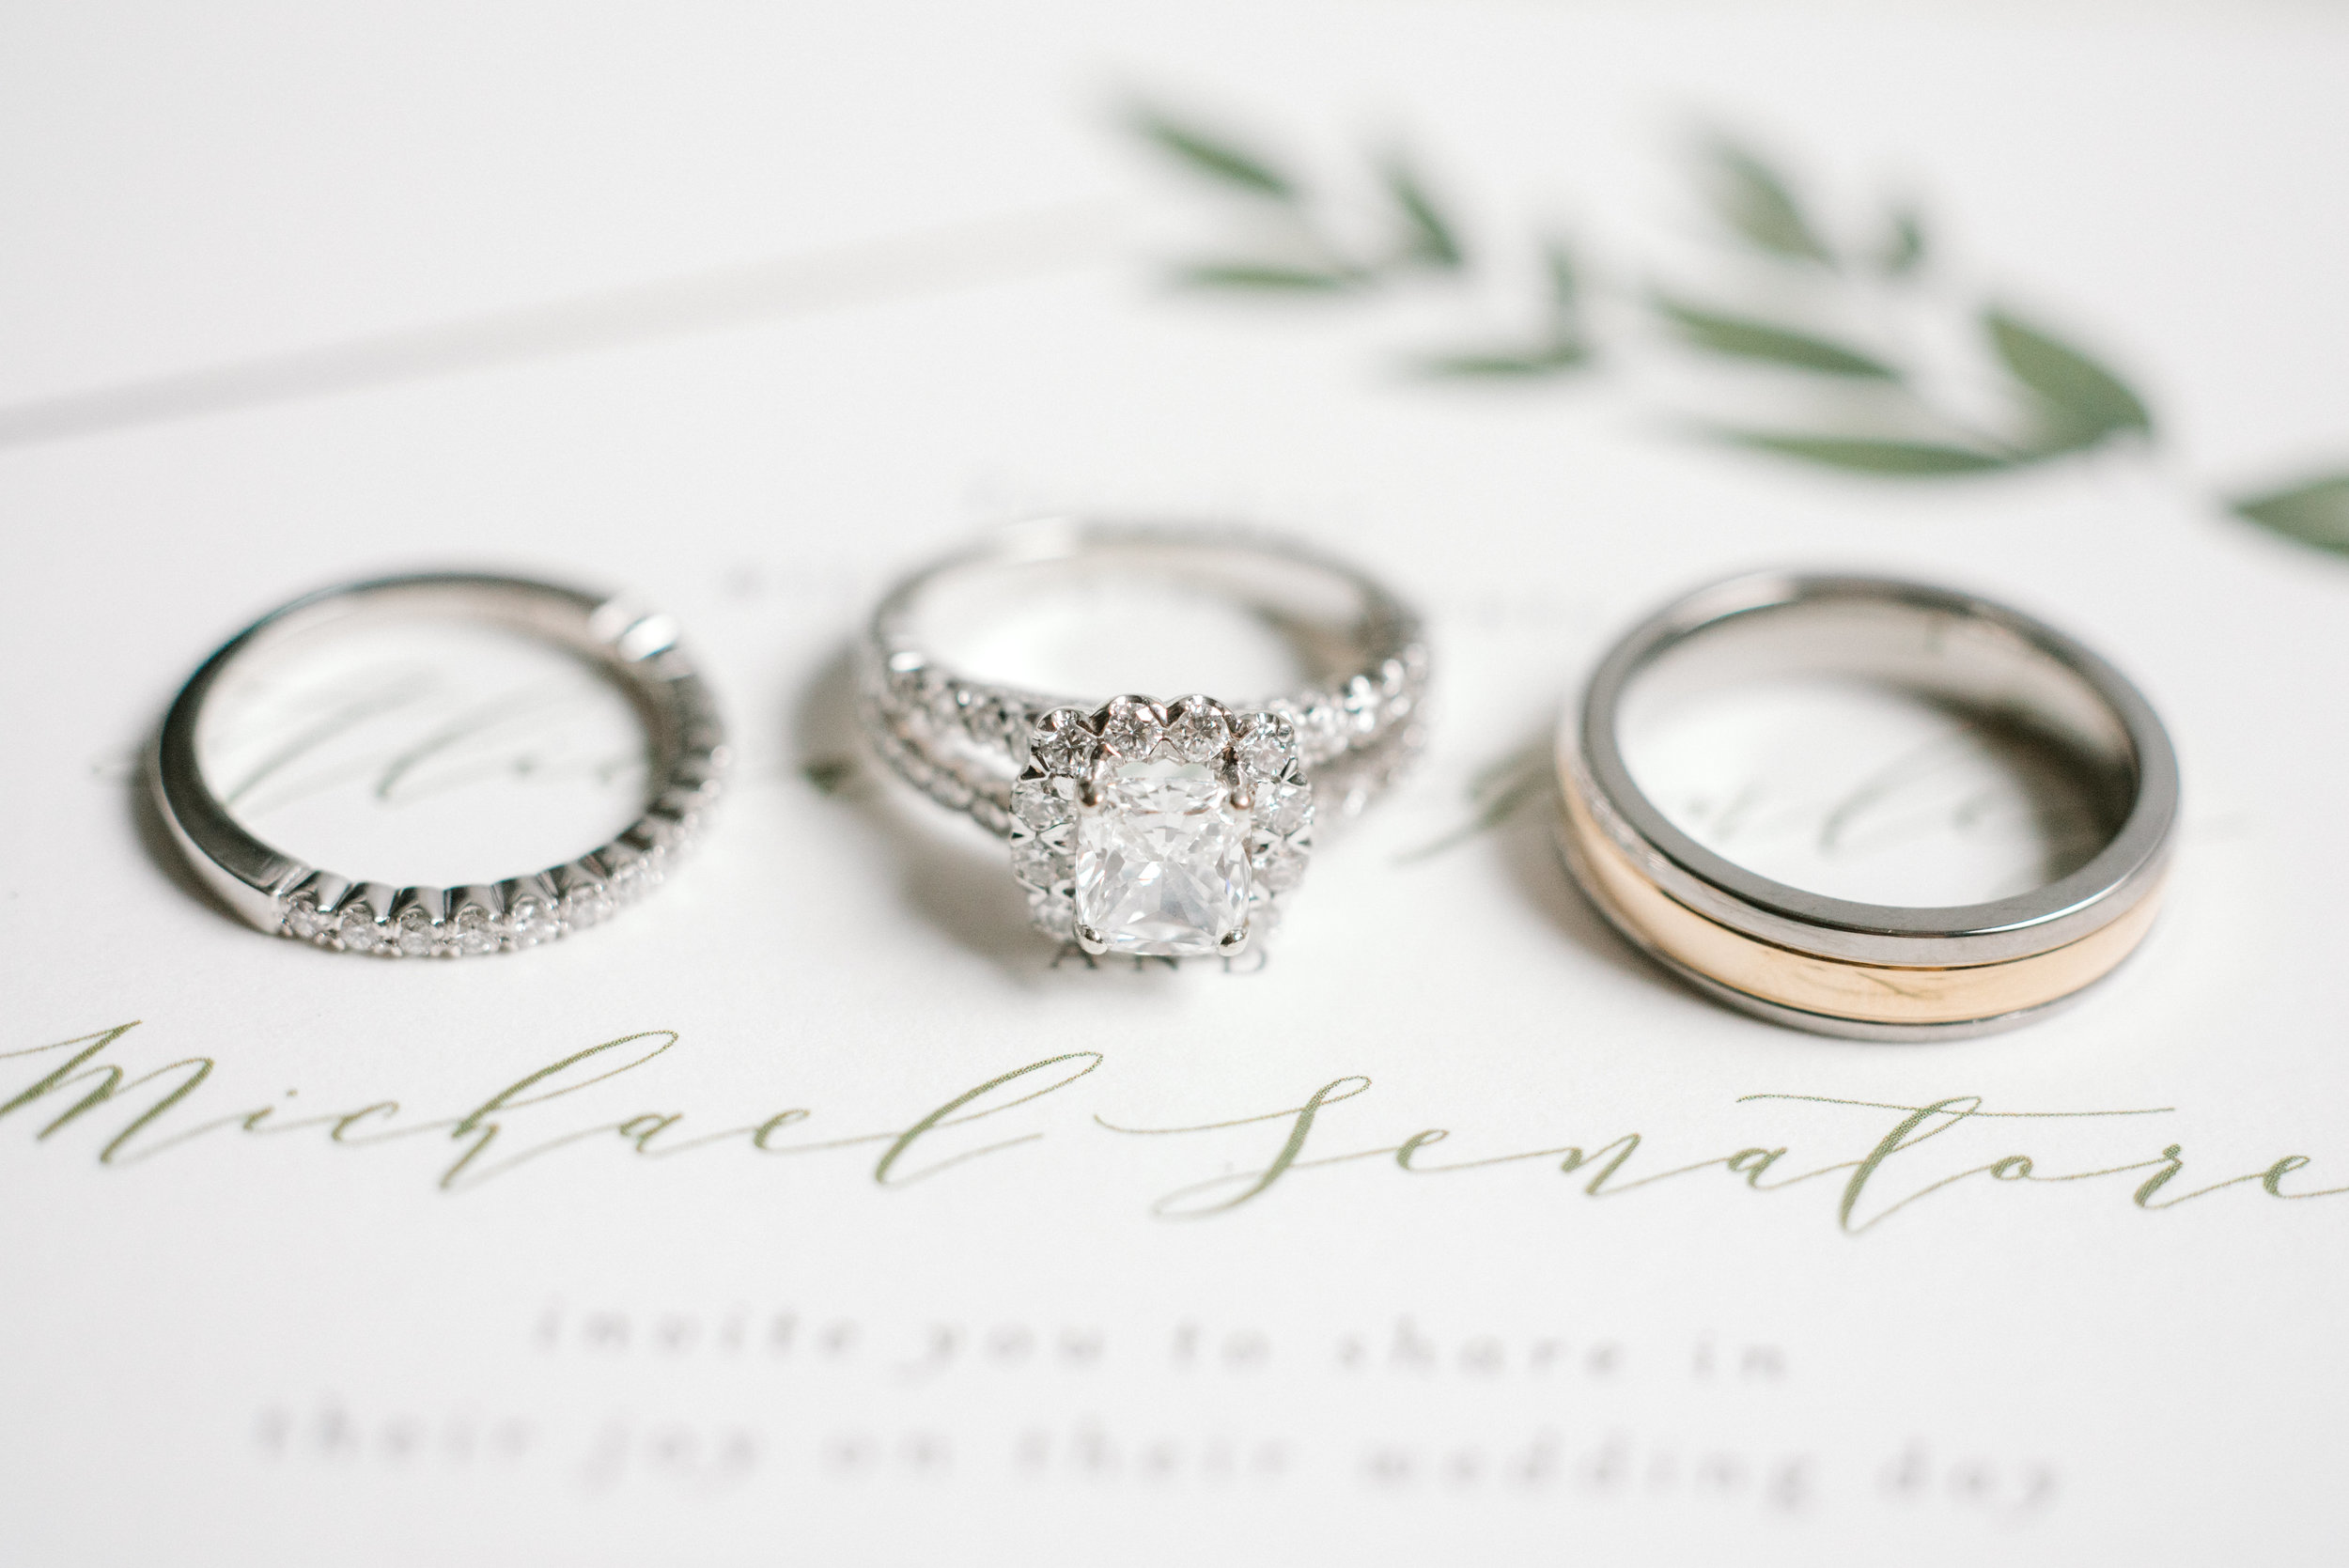 Everybody loves a white diamond, the more the merrier from this bright boho chic Tyler Gardens wedding in Bucks County